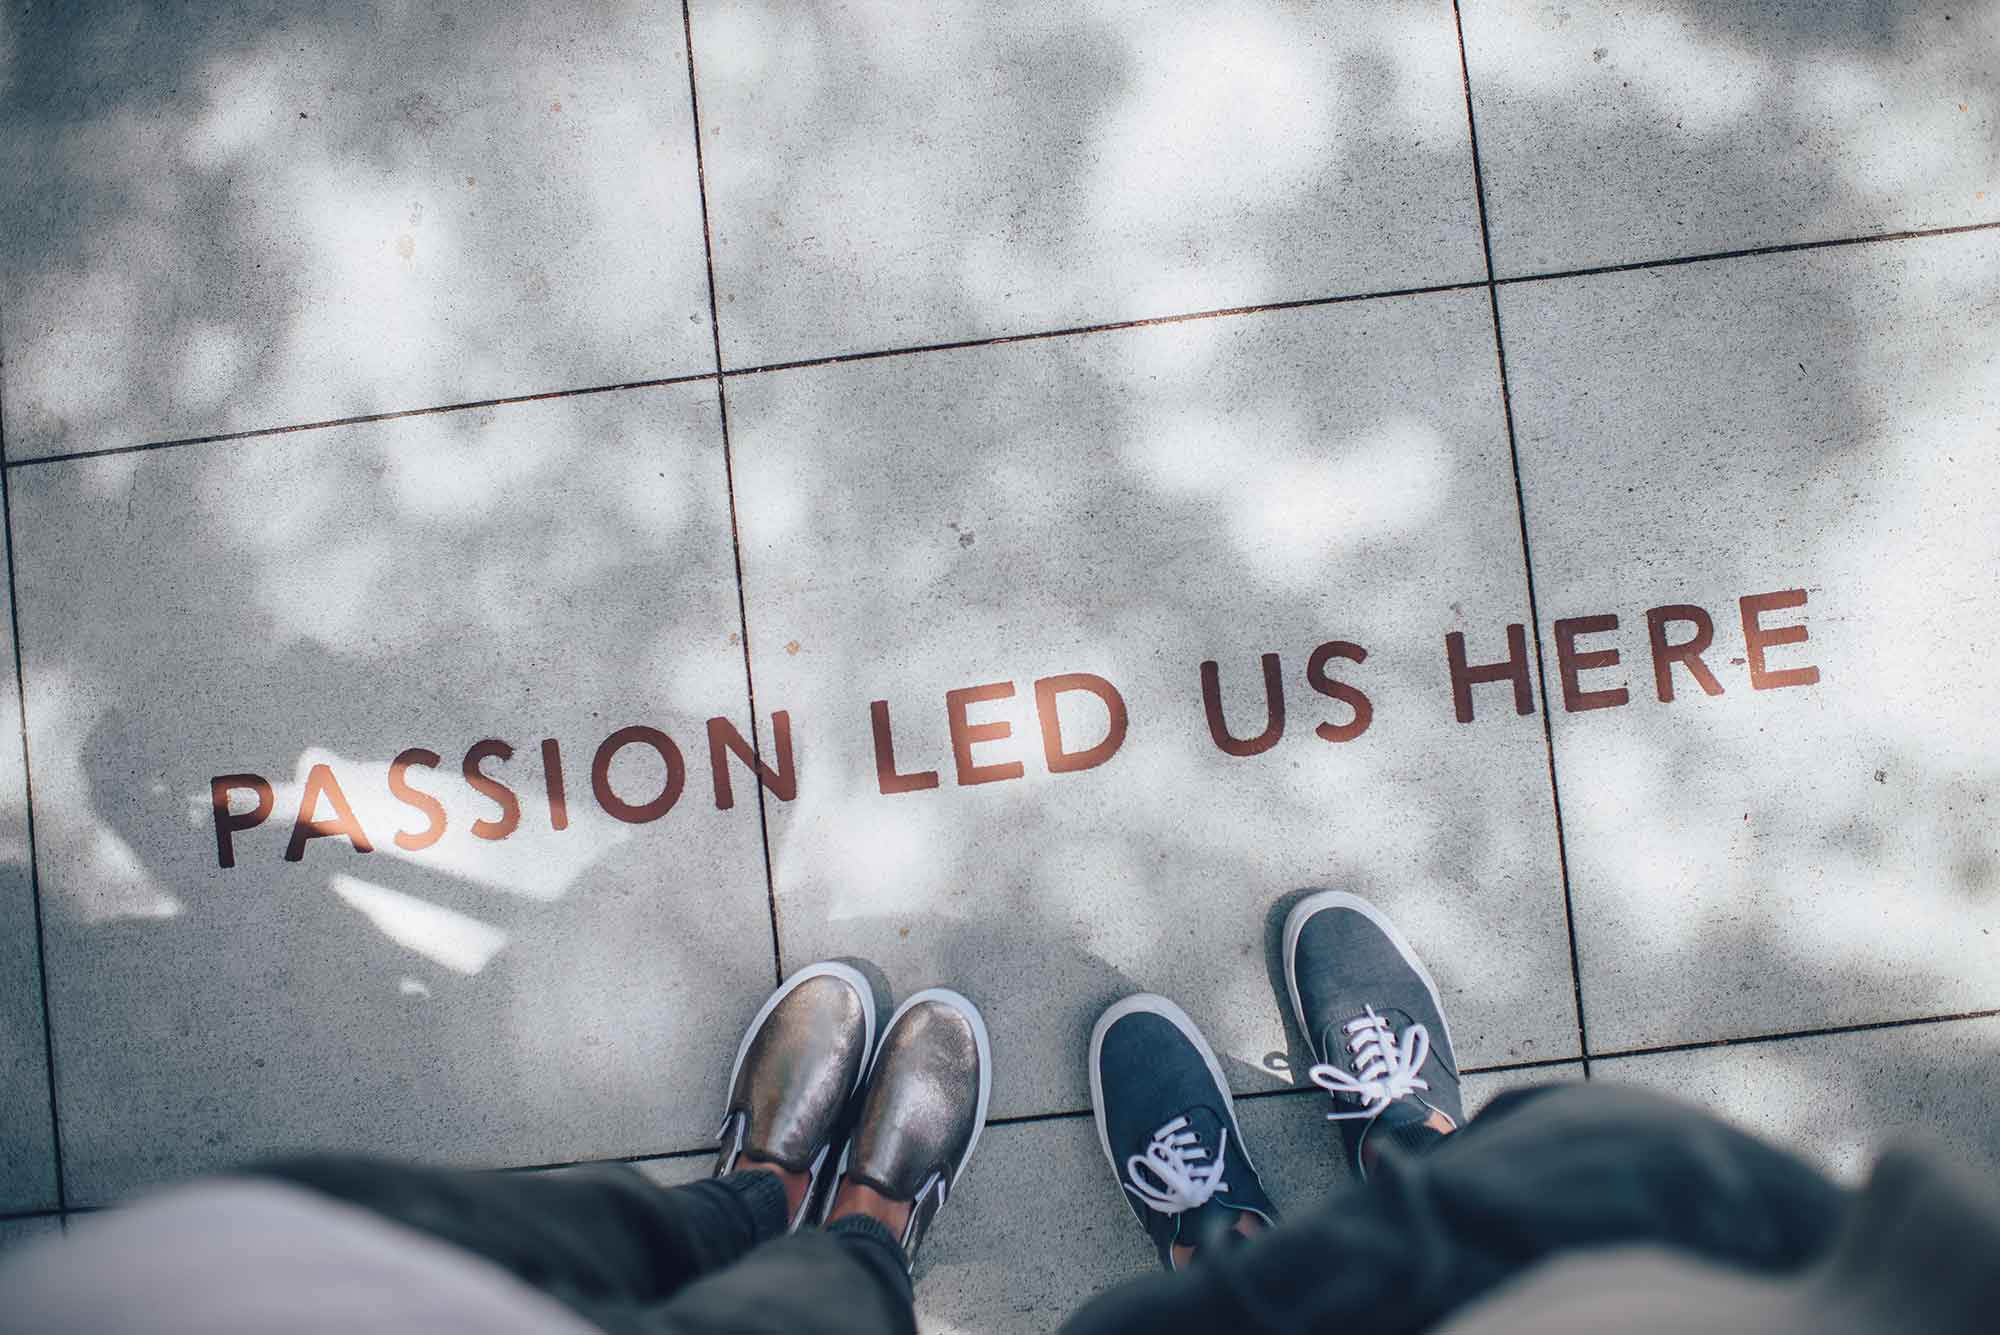 passion-led-us-here-shoes-ian-schneider-2000x1333